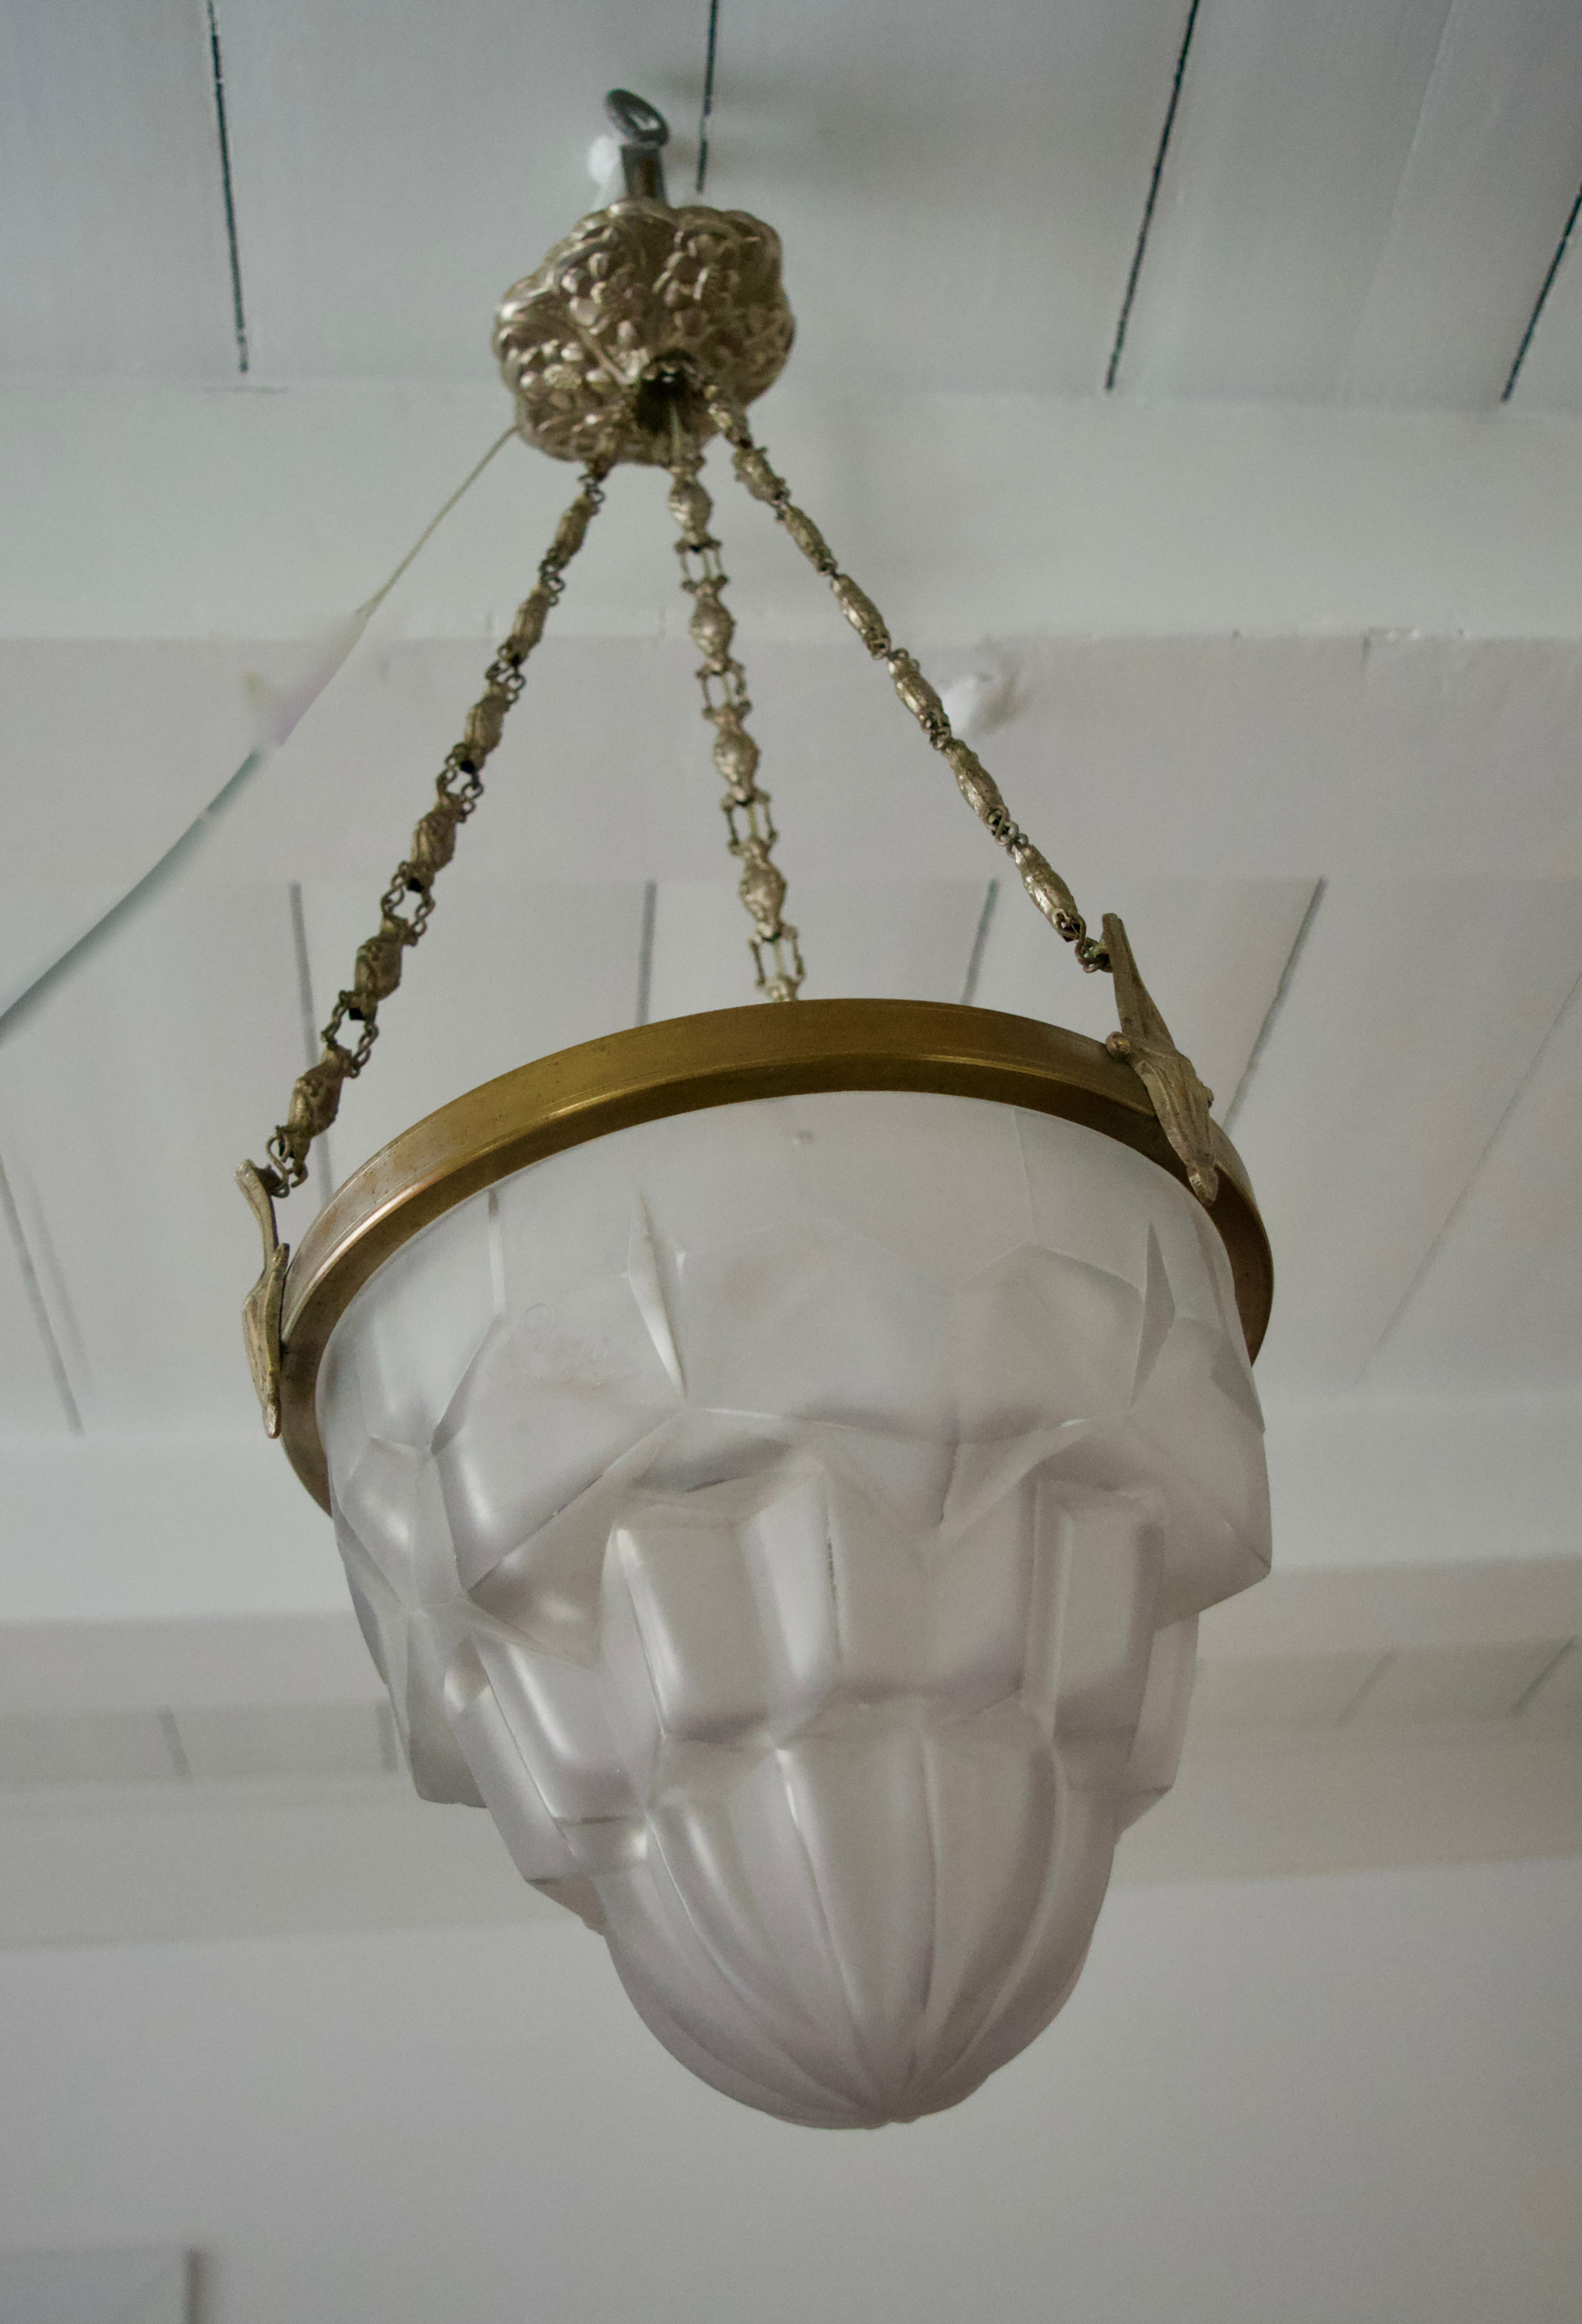 French Art Deco Degue Chandelier, France 1920s